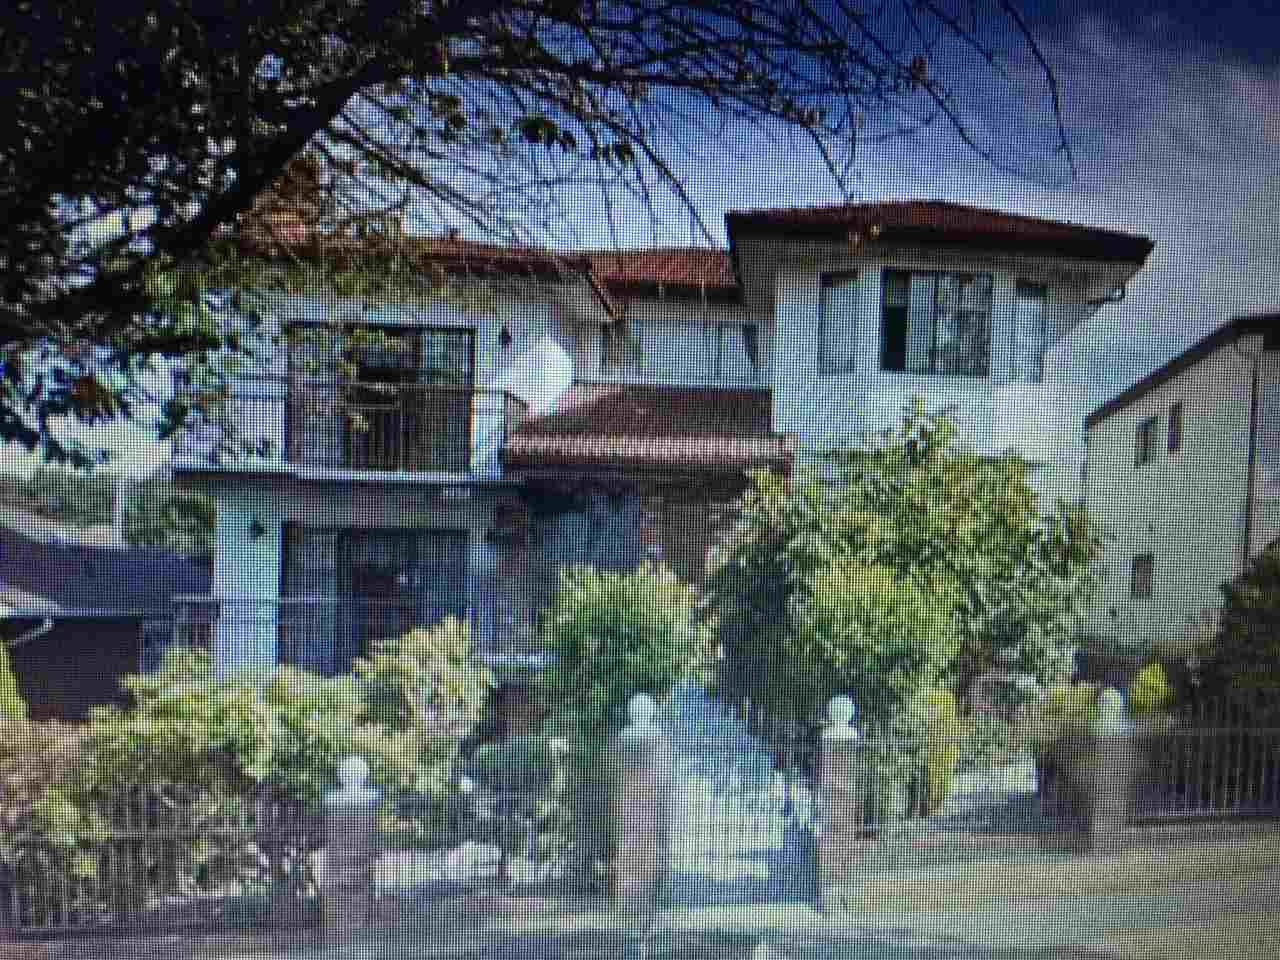 Rare find top-quality Italian built house, with huge amount of living space, offered for sale. Located in one of the most convenient yet desirable neighborhood, this property is extremely well-maintained with the same owner for over 30 years. With 3-level, 7-bedroom and 6 full bathrooms, it offers tons of living space for a big family or investor. Brick exterior and tile roof adds extraordinary character to this uniquely solid building, with beautifully maintained garden. Hardwood and tile flooring are original and in great condition. Huge rec room and exquisite bar room, with one-bedroom suite with separate entrance, downstairs are just some of the unique features rarely find in this market.